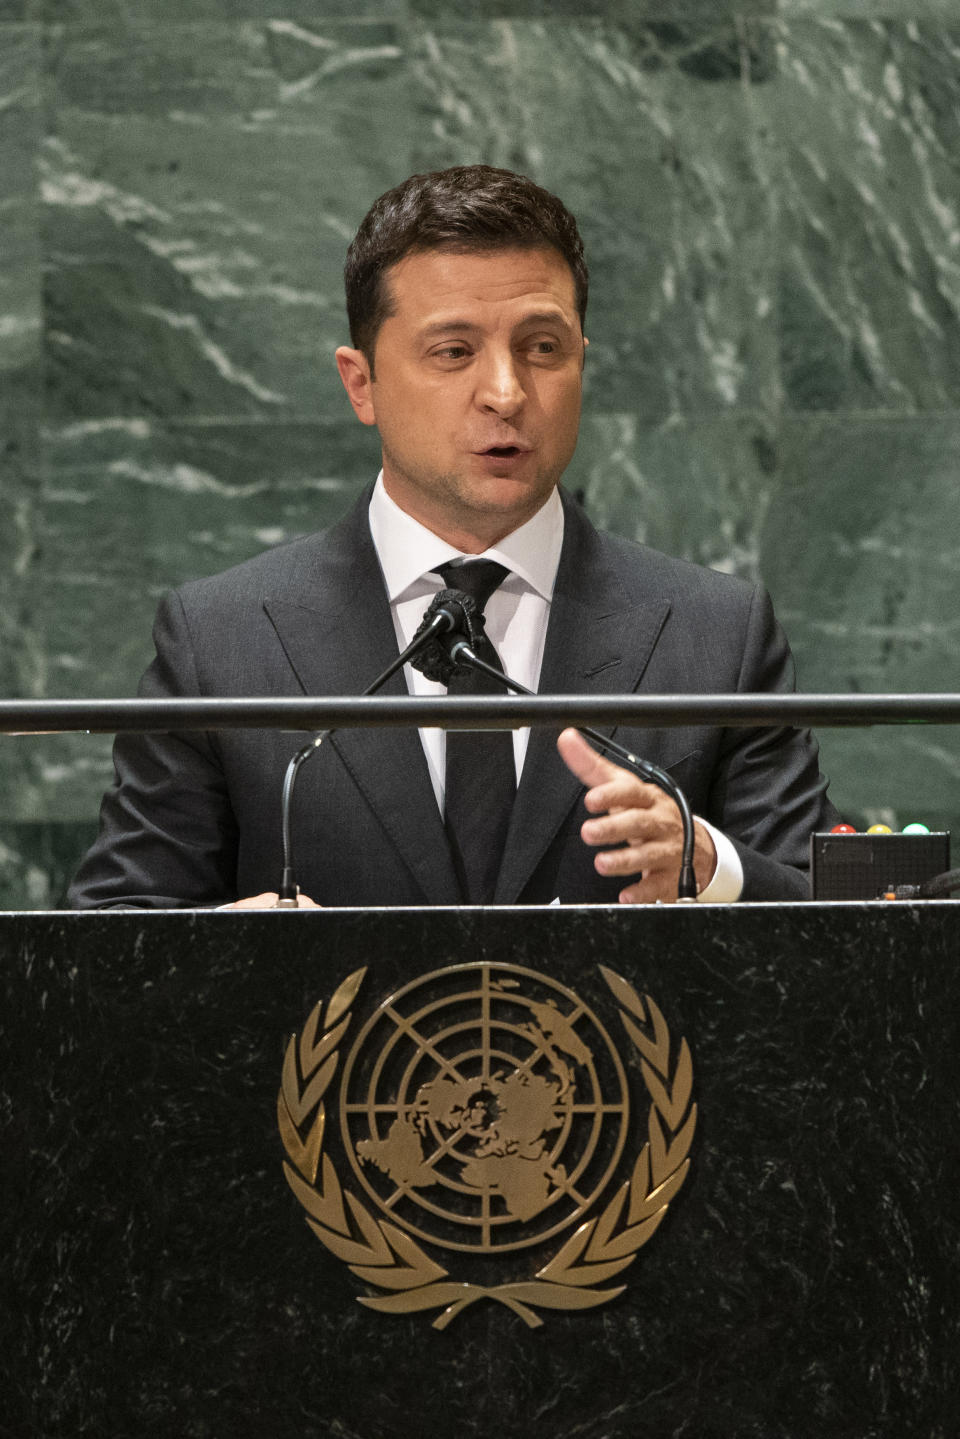 Ukraine President Volodymyr Zelenskiy speaks during the 76th session of the United Nations General Assembly, Wednesday, Sept. 22, 2021, at UN headquarters. (Eduardo Munoz/Pool Photo via AP)